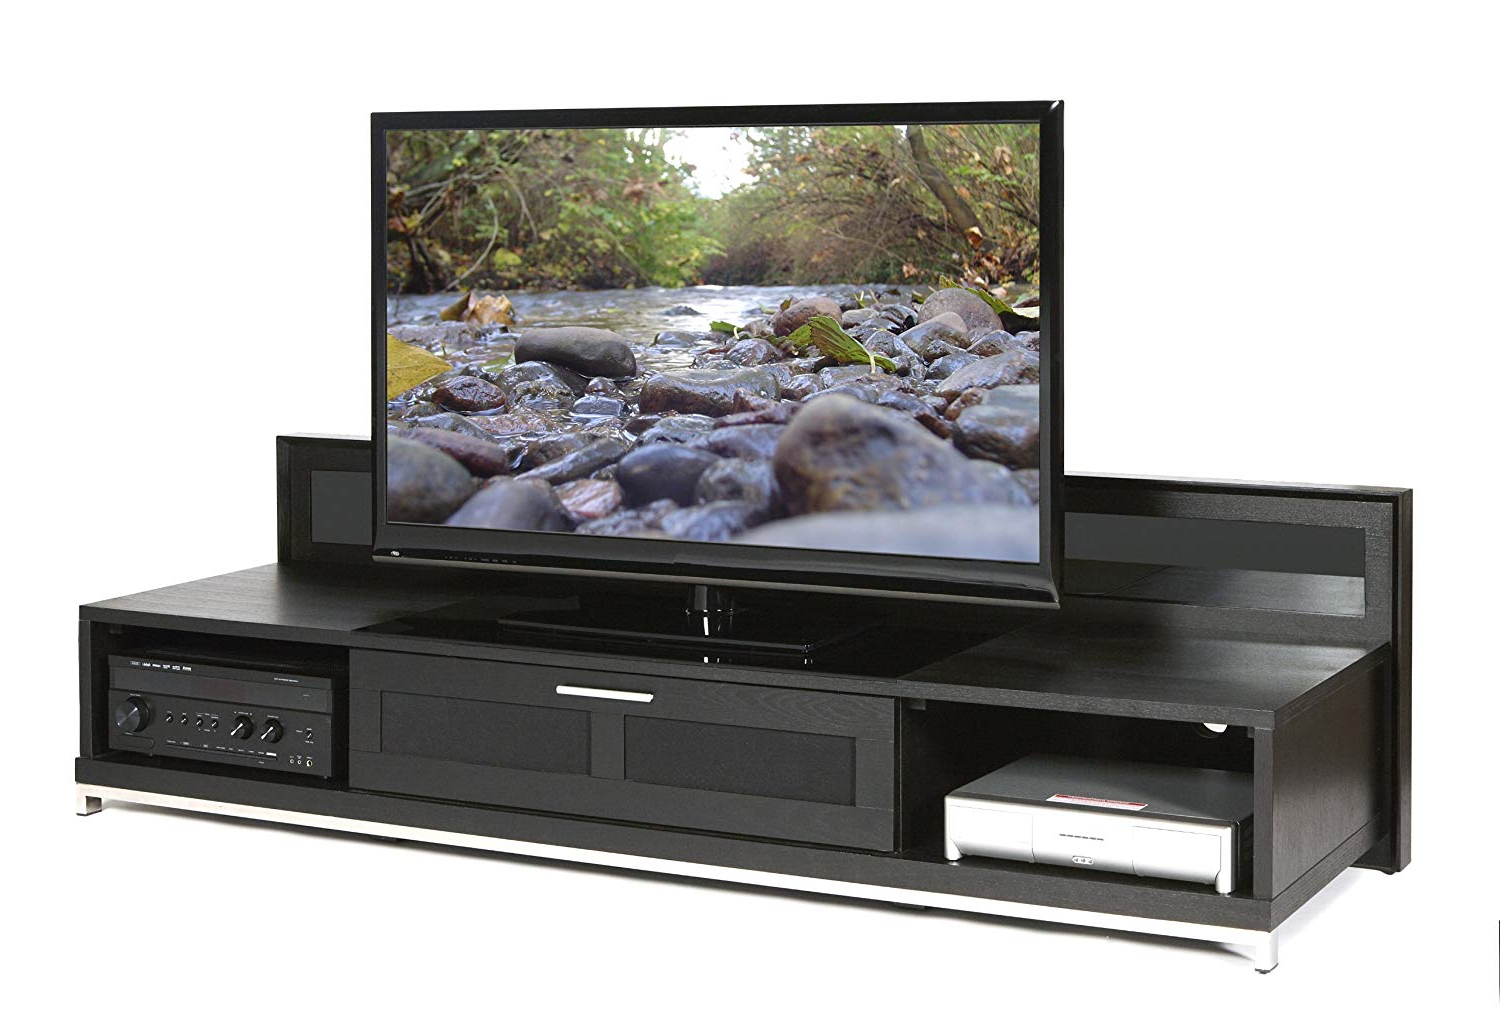 Newest Amazon: Plateau Valencia 79 B Wood Tv Stand, 79 Inch, Black Oak For Valencia 70 Inch Tv Stands (View 8 of 20)